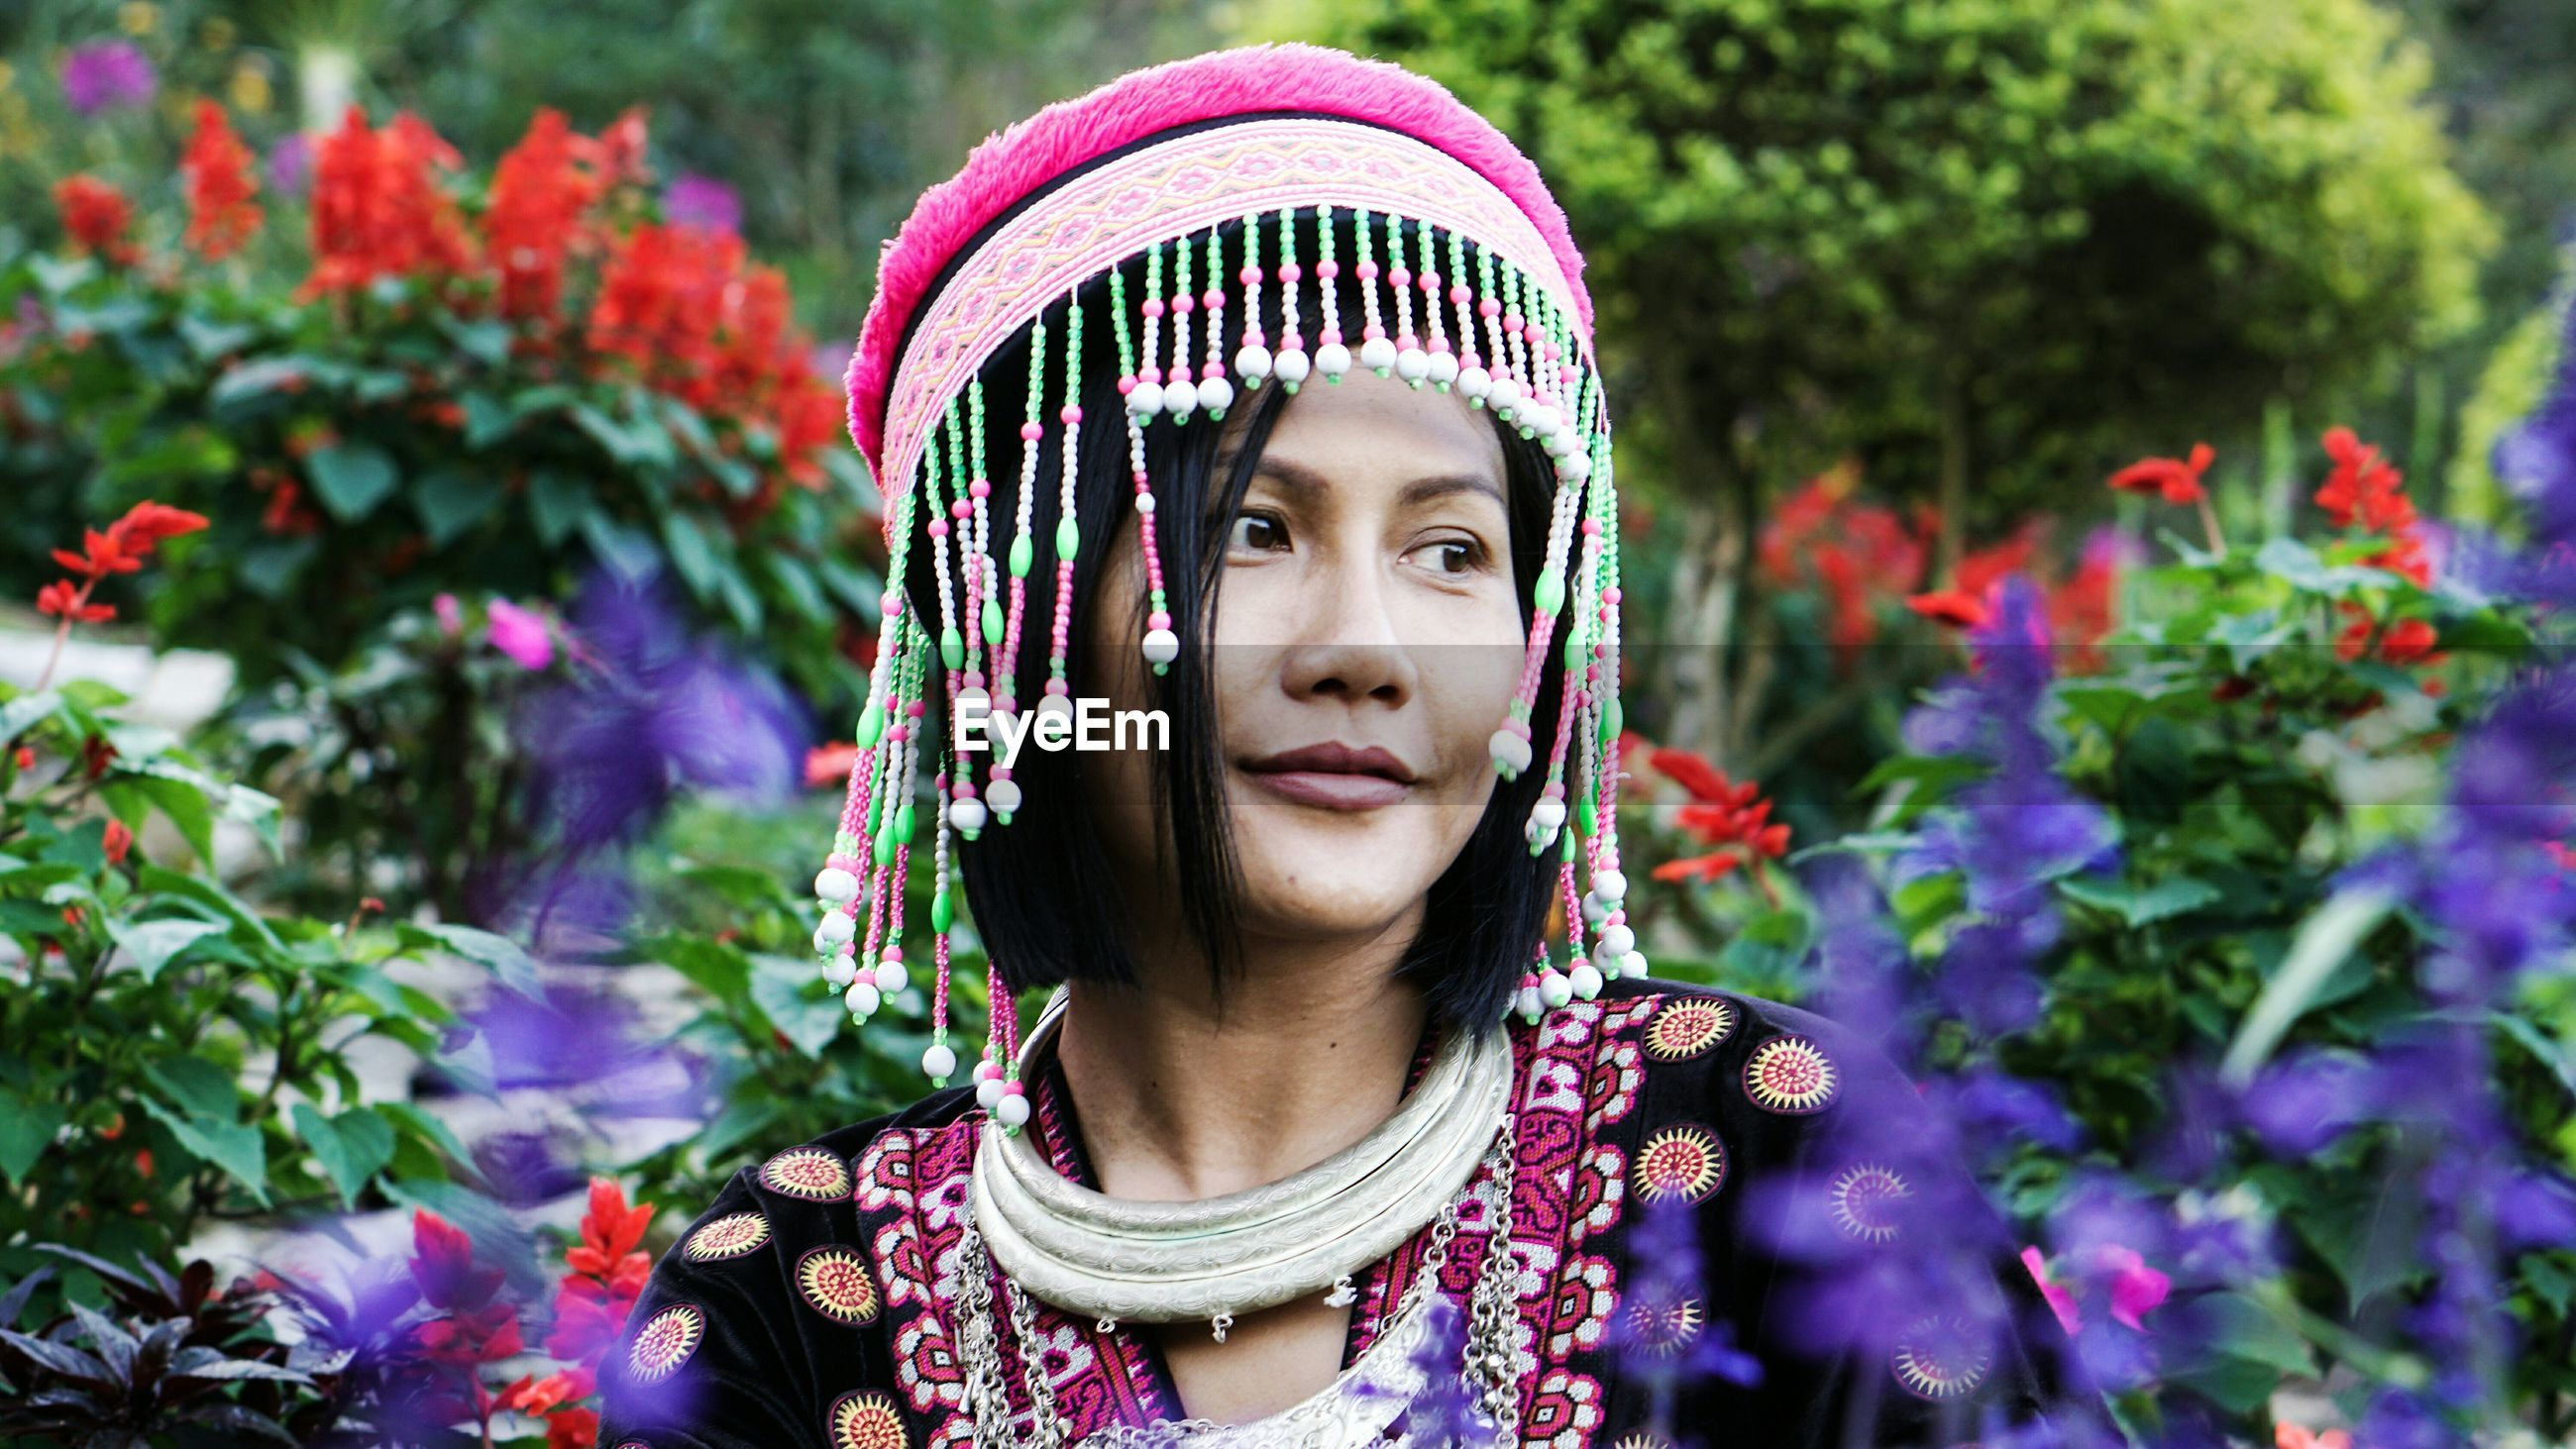 Woman in traditional clothing wearing headwear at park